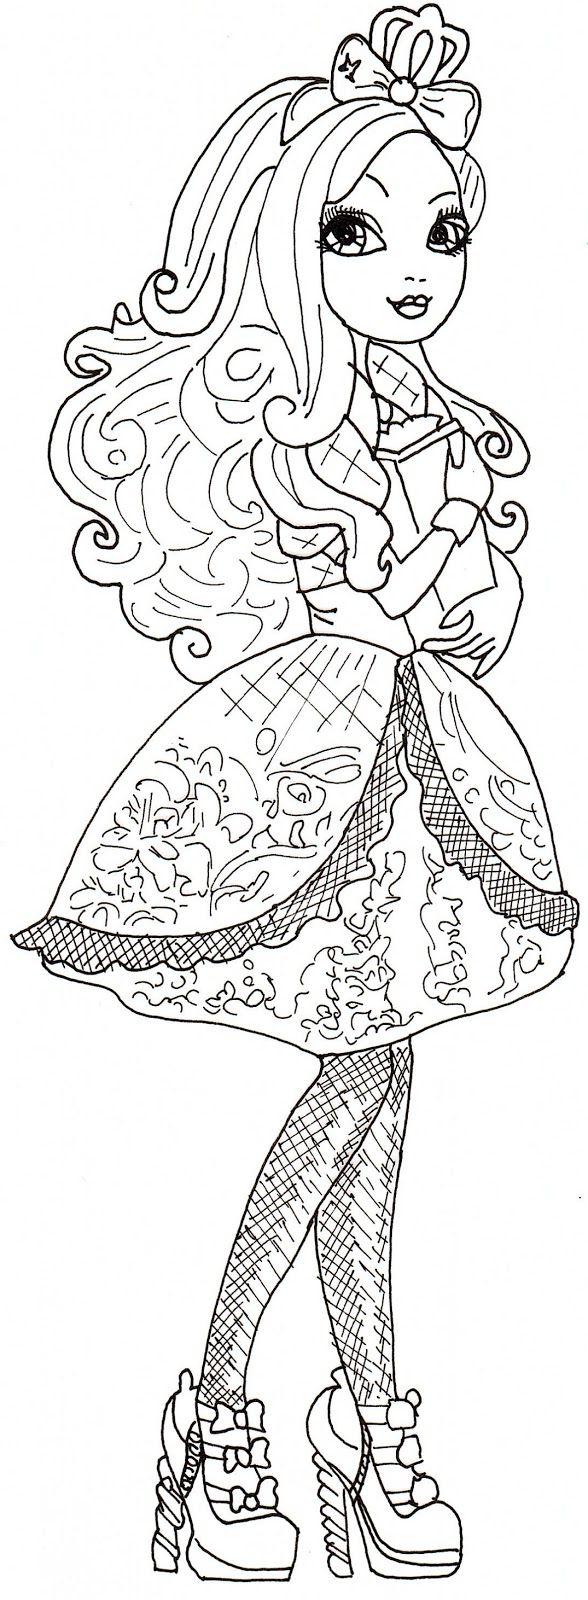 Free Printable Ever After High Coloring Pages: June 2013